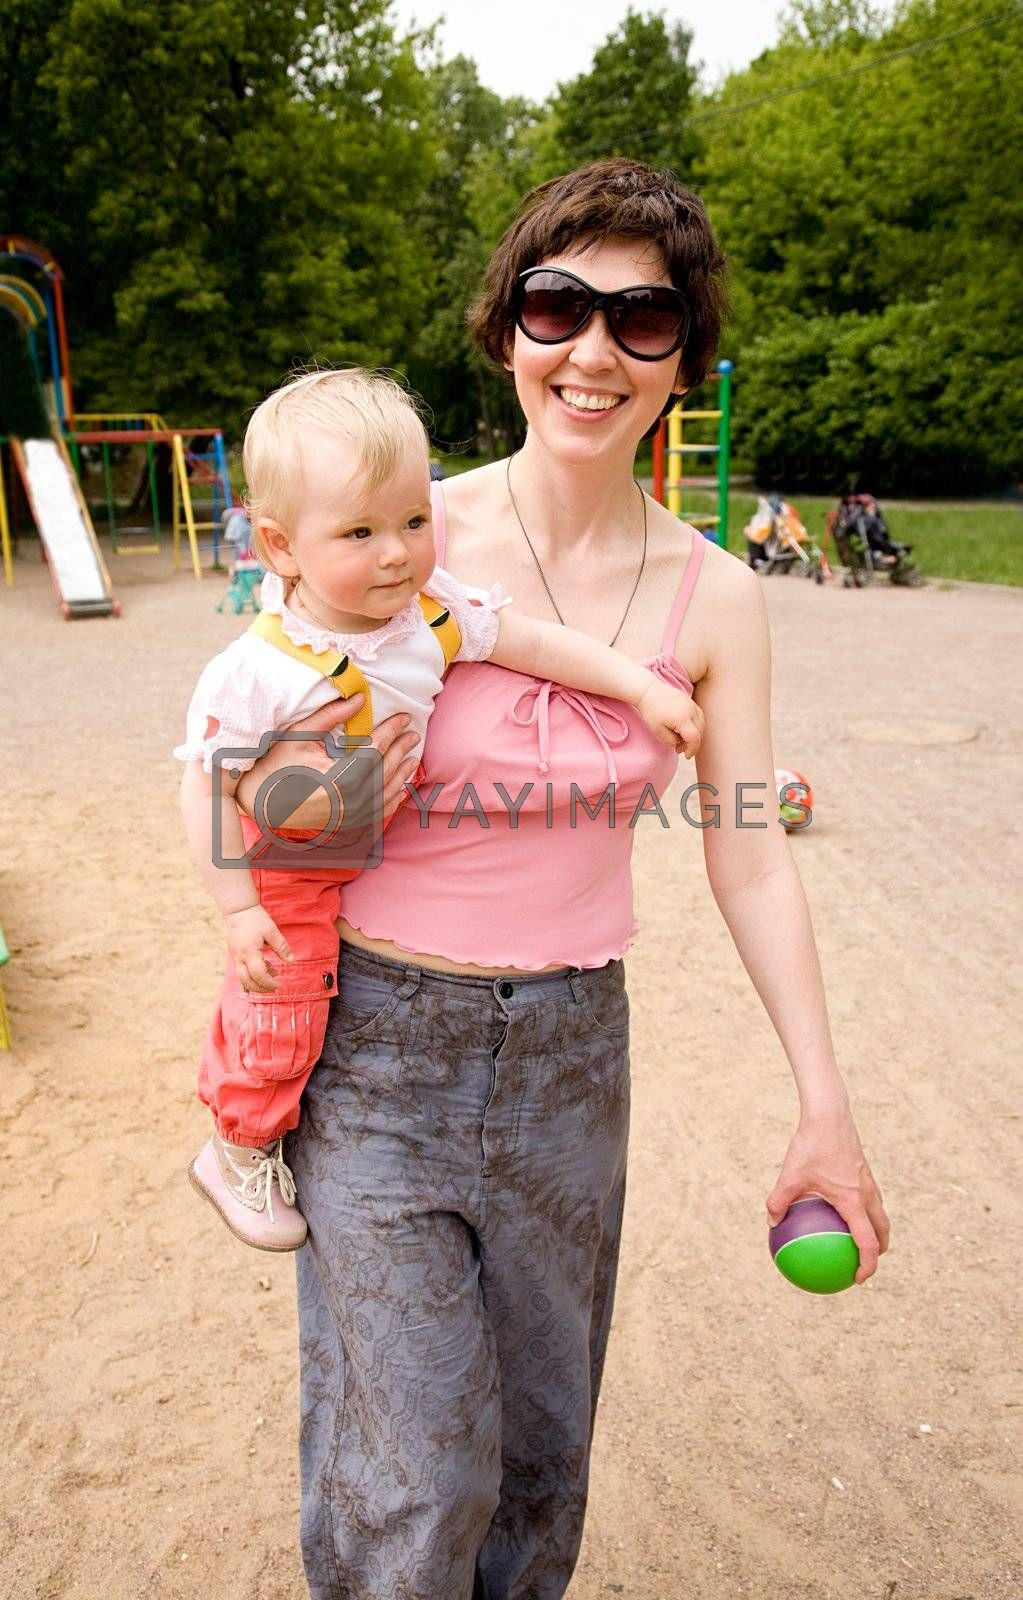 Beautiful harmonous mum with dark hair in sun glasses carries a little daughter and a green ball on a children's playground